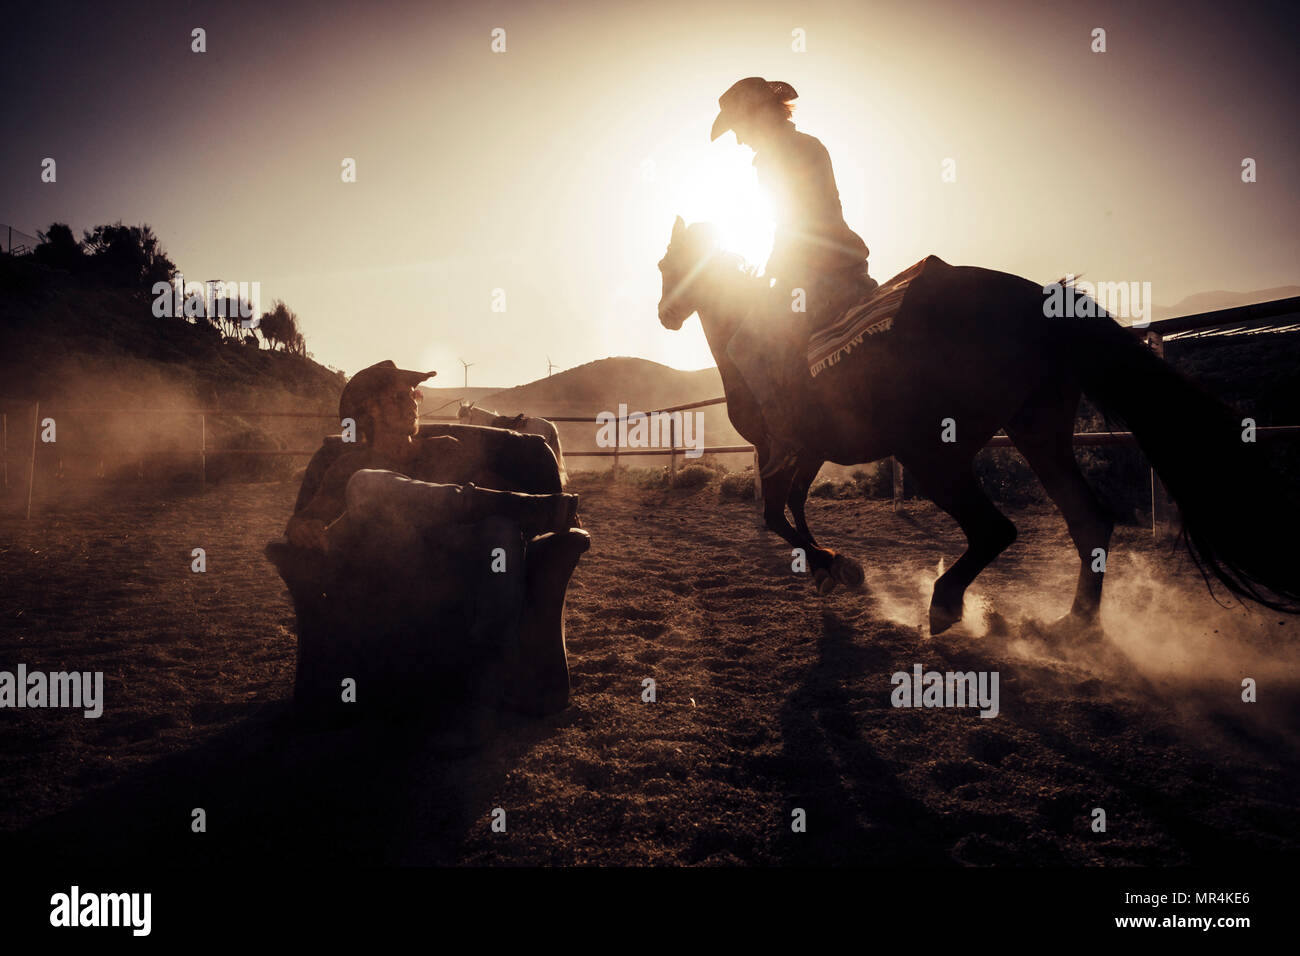 hero concept dramatic and advertising style image for cowgirl making dust riding a horse near a cowboy sit down on a chair in the middle of the track. - Stock Image